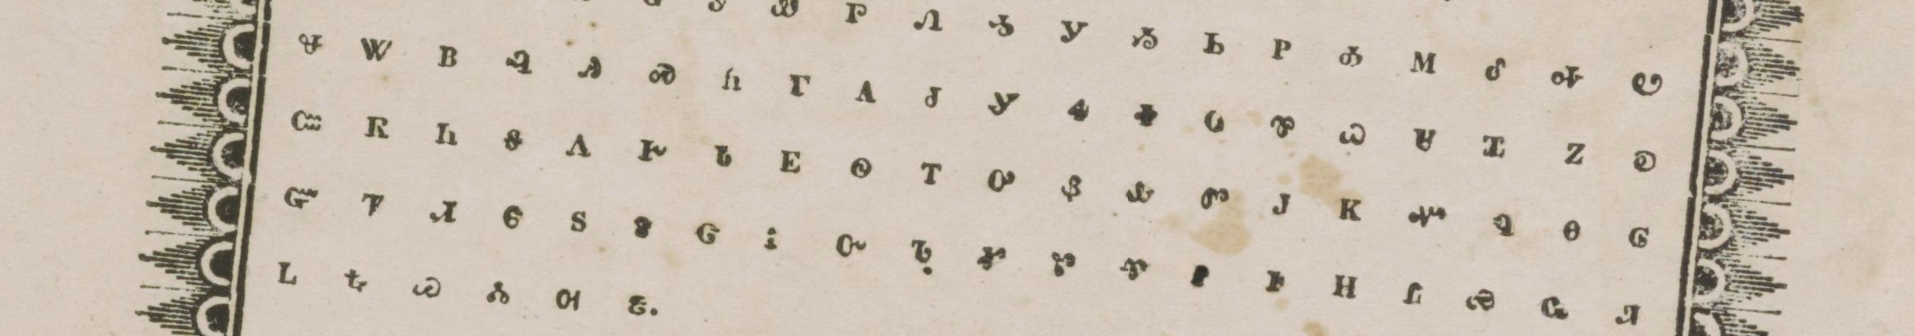 A piece of an old newspaper page, showing part of the Cherokee syllabary